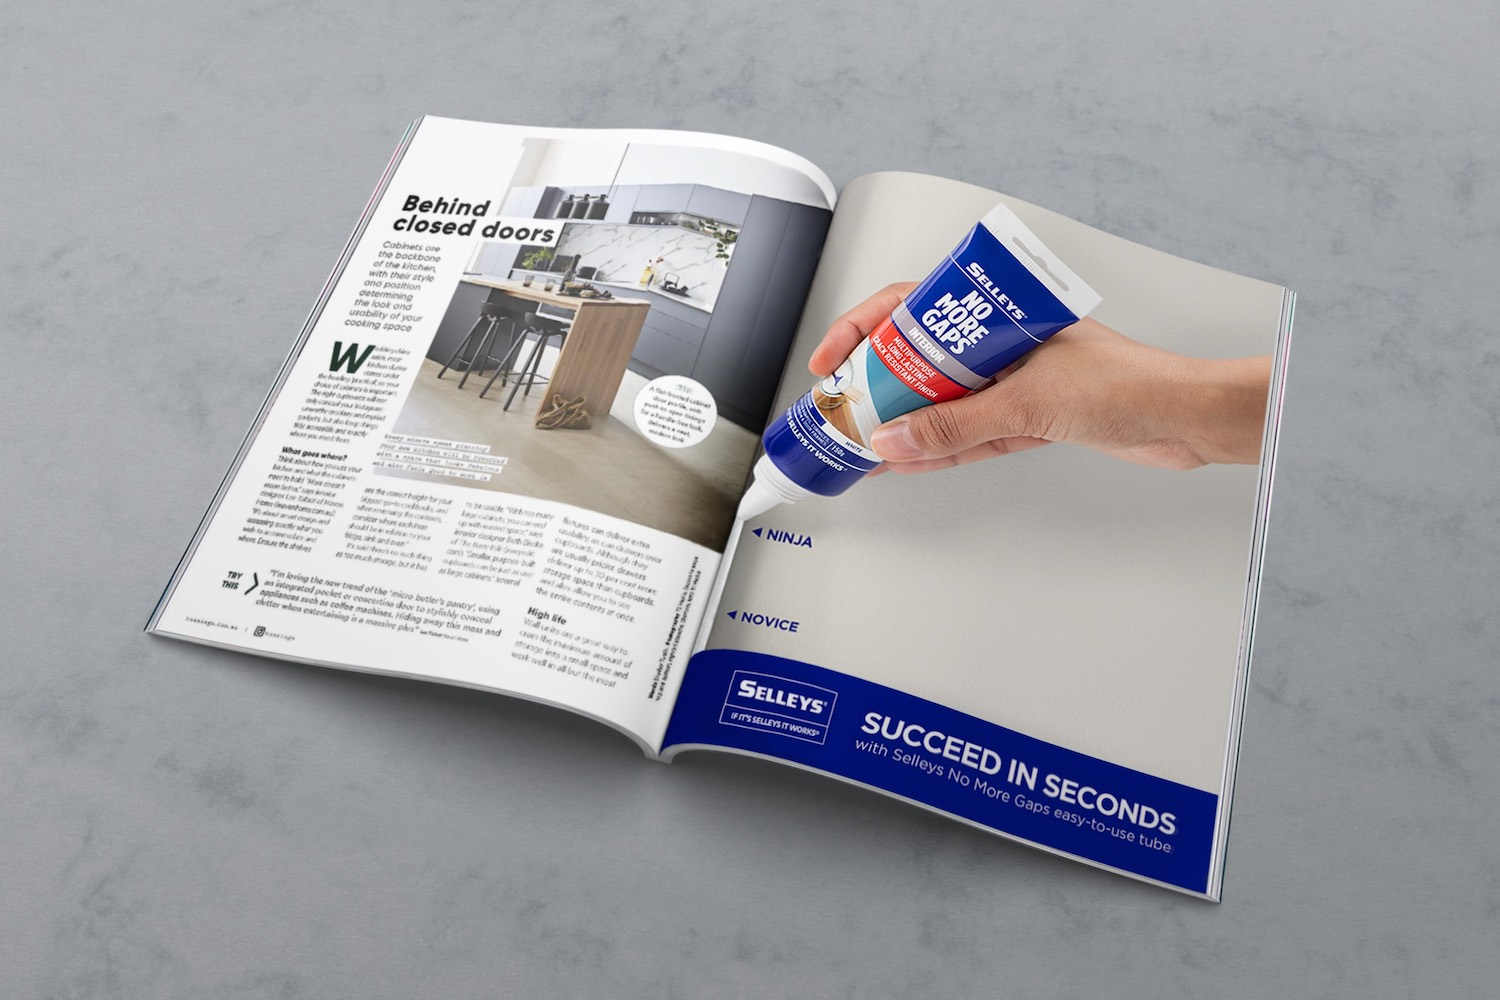 Selleys targets DIY-ers in latest national brand campaign 'No More Gaps' via Thinkerbell